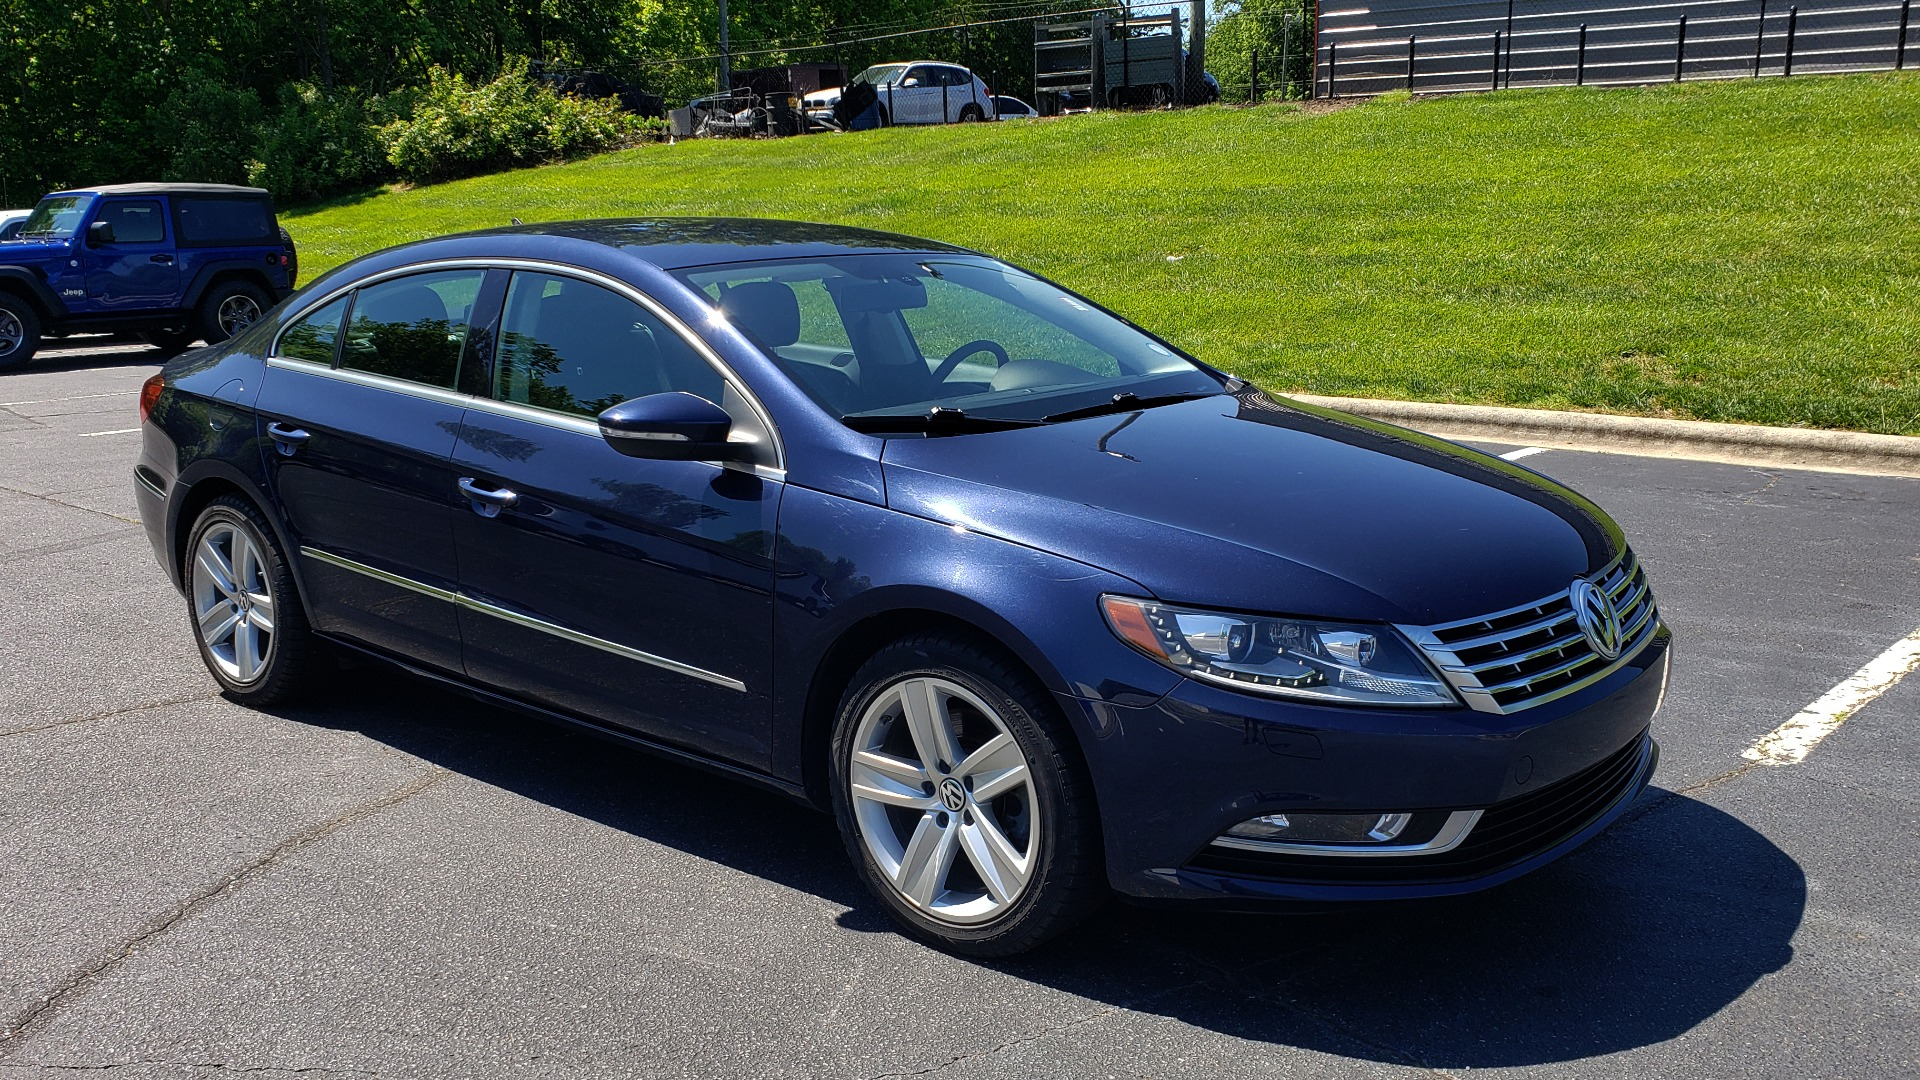 Used 2013 Volkswagen CC SPORT W/LIGHTING PKG / 2.0L 4-CYL / DSG 6-SPD AUTO for sale Sold at Formula Imports in Charlotte NC 28227 4